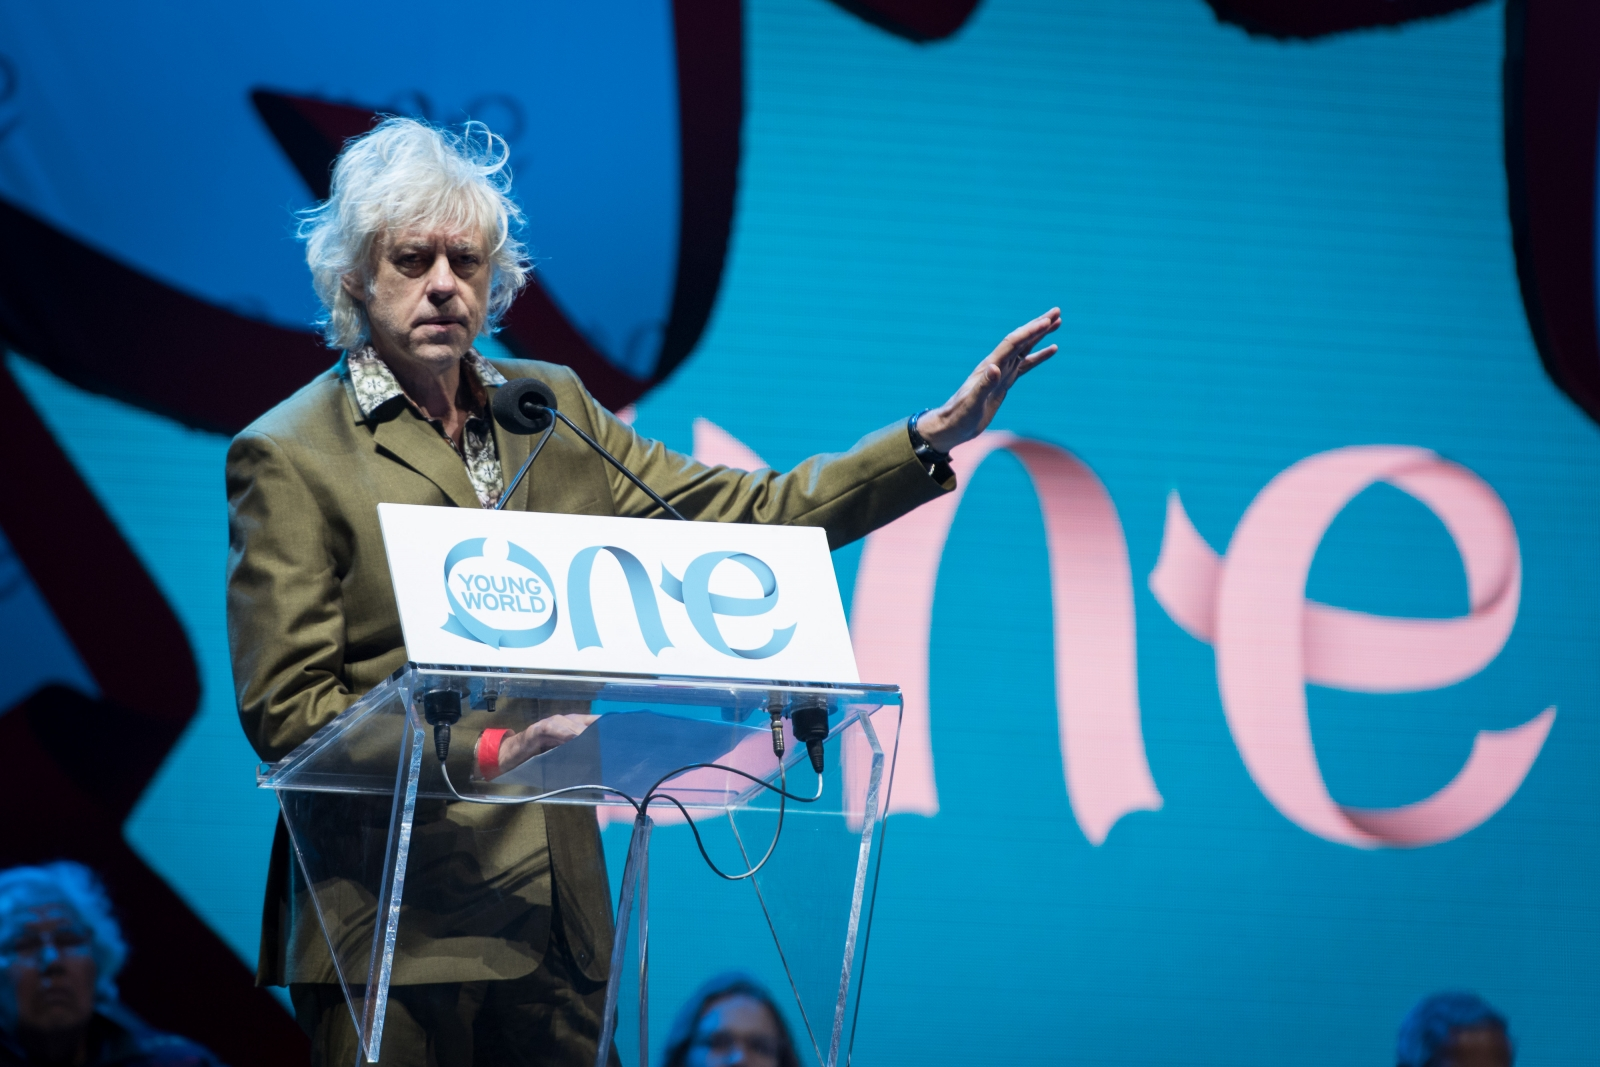 Bob Geldof calls Donald Trump 'a racist liar vomiting bile over the US'